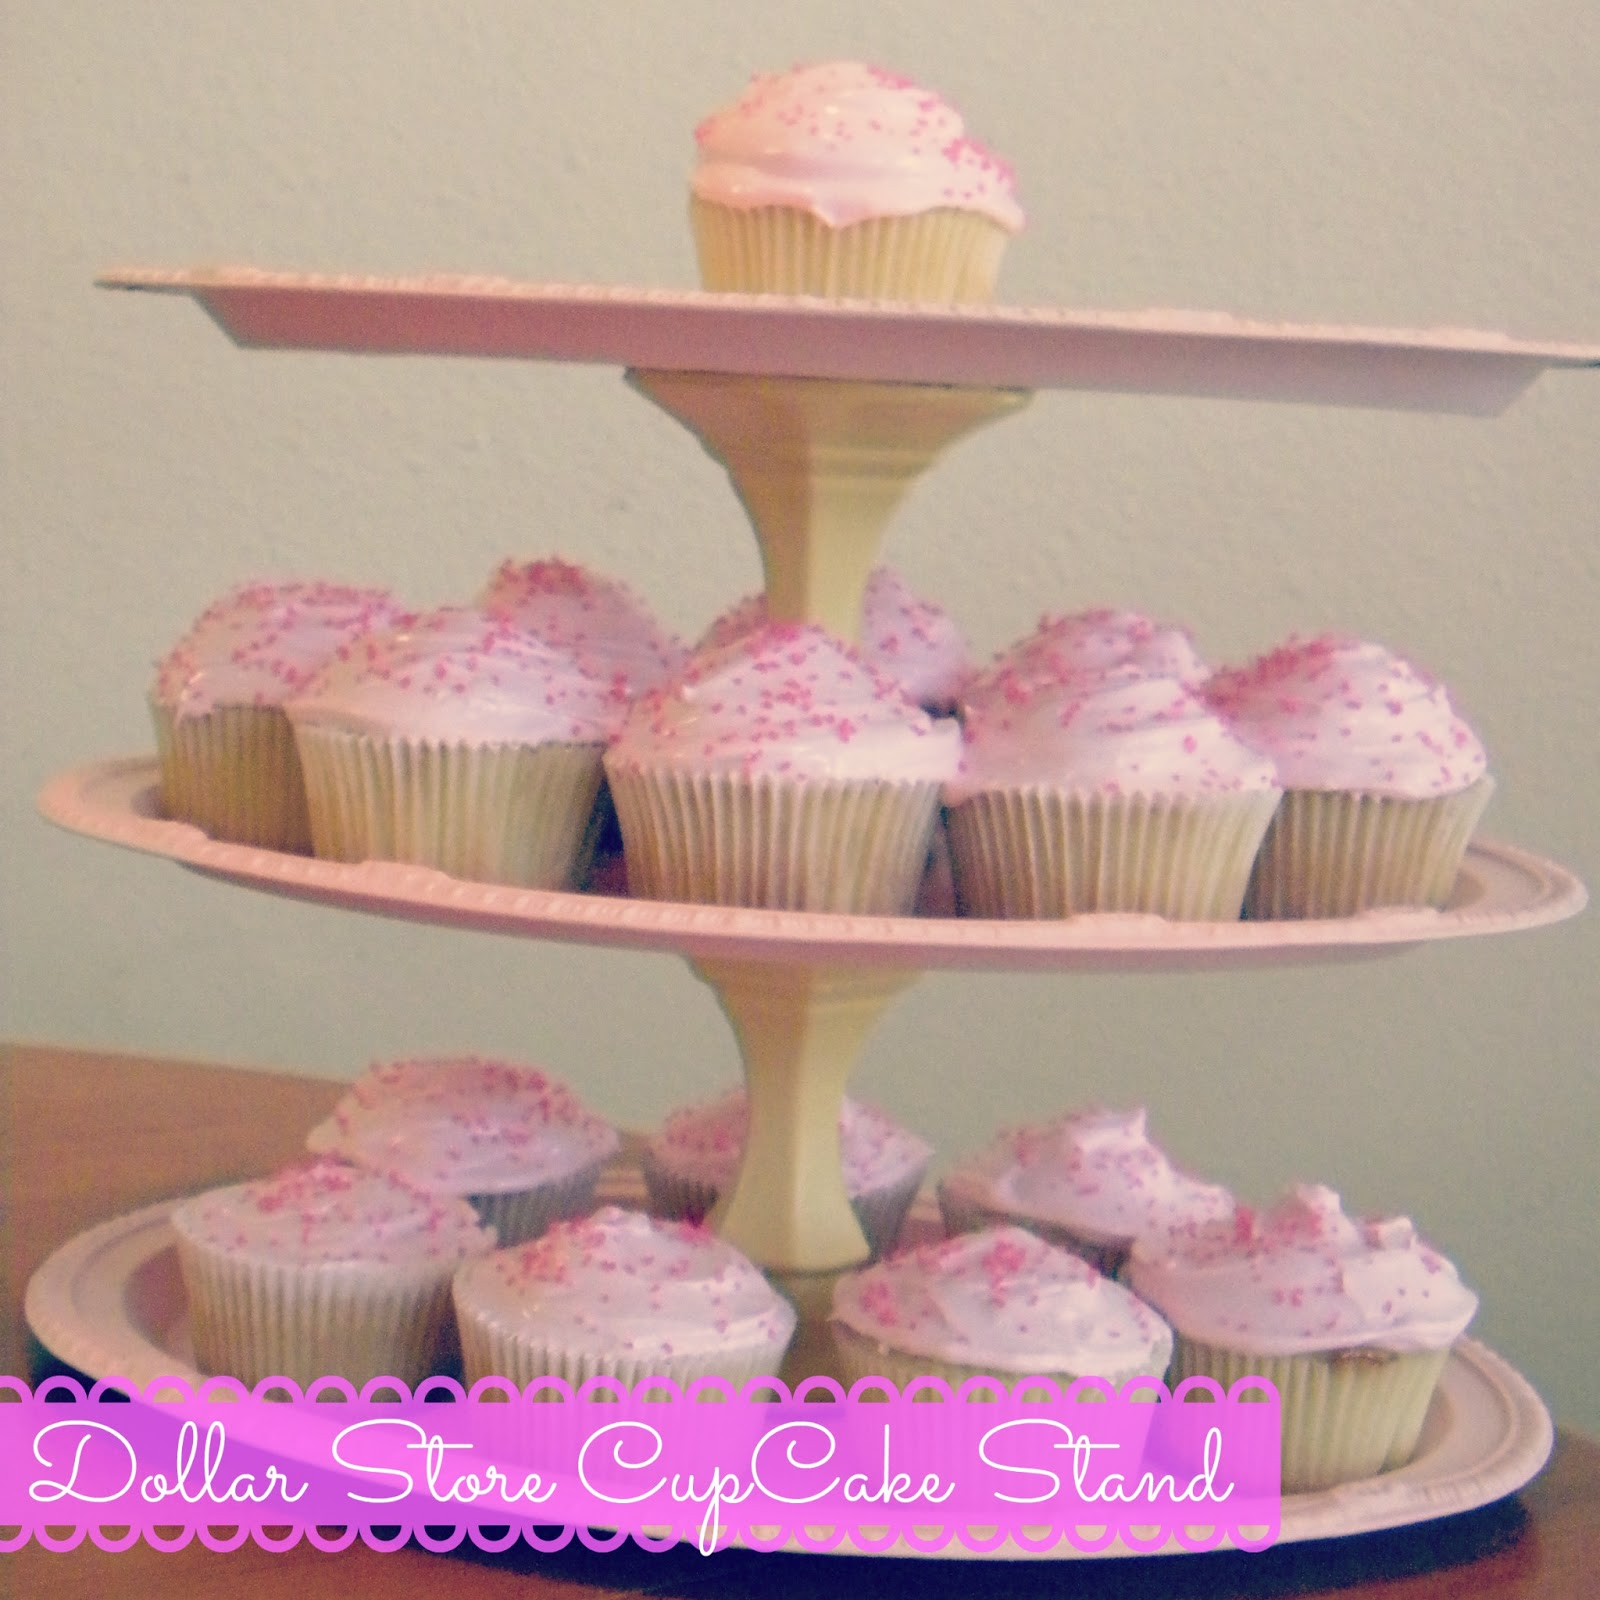 Hot Mama In The City: DIY: Dollar Store Cupcake Stand